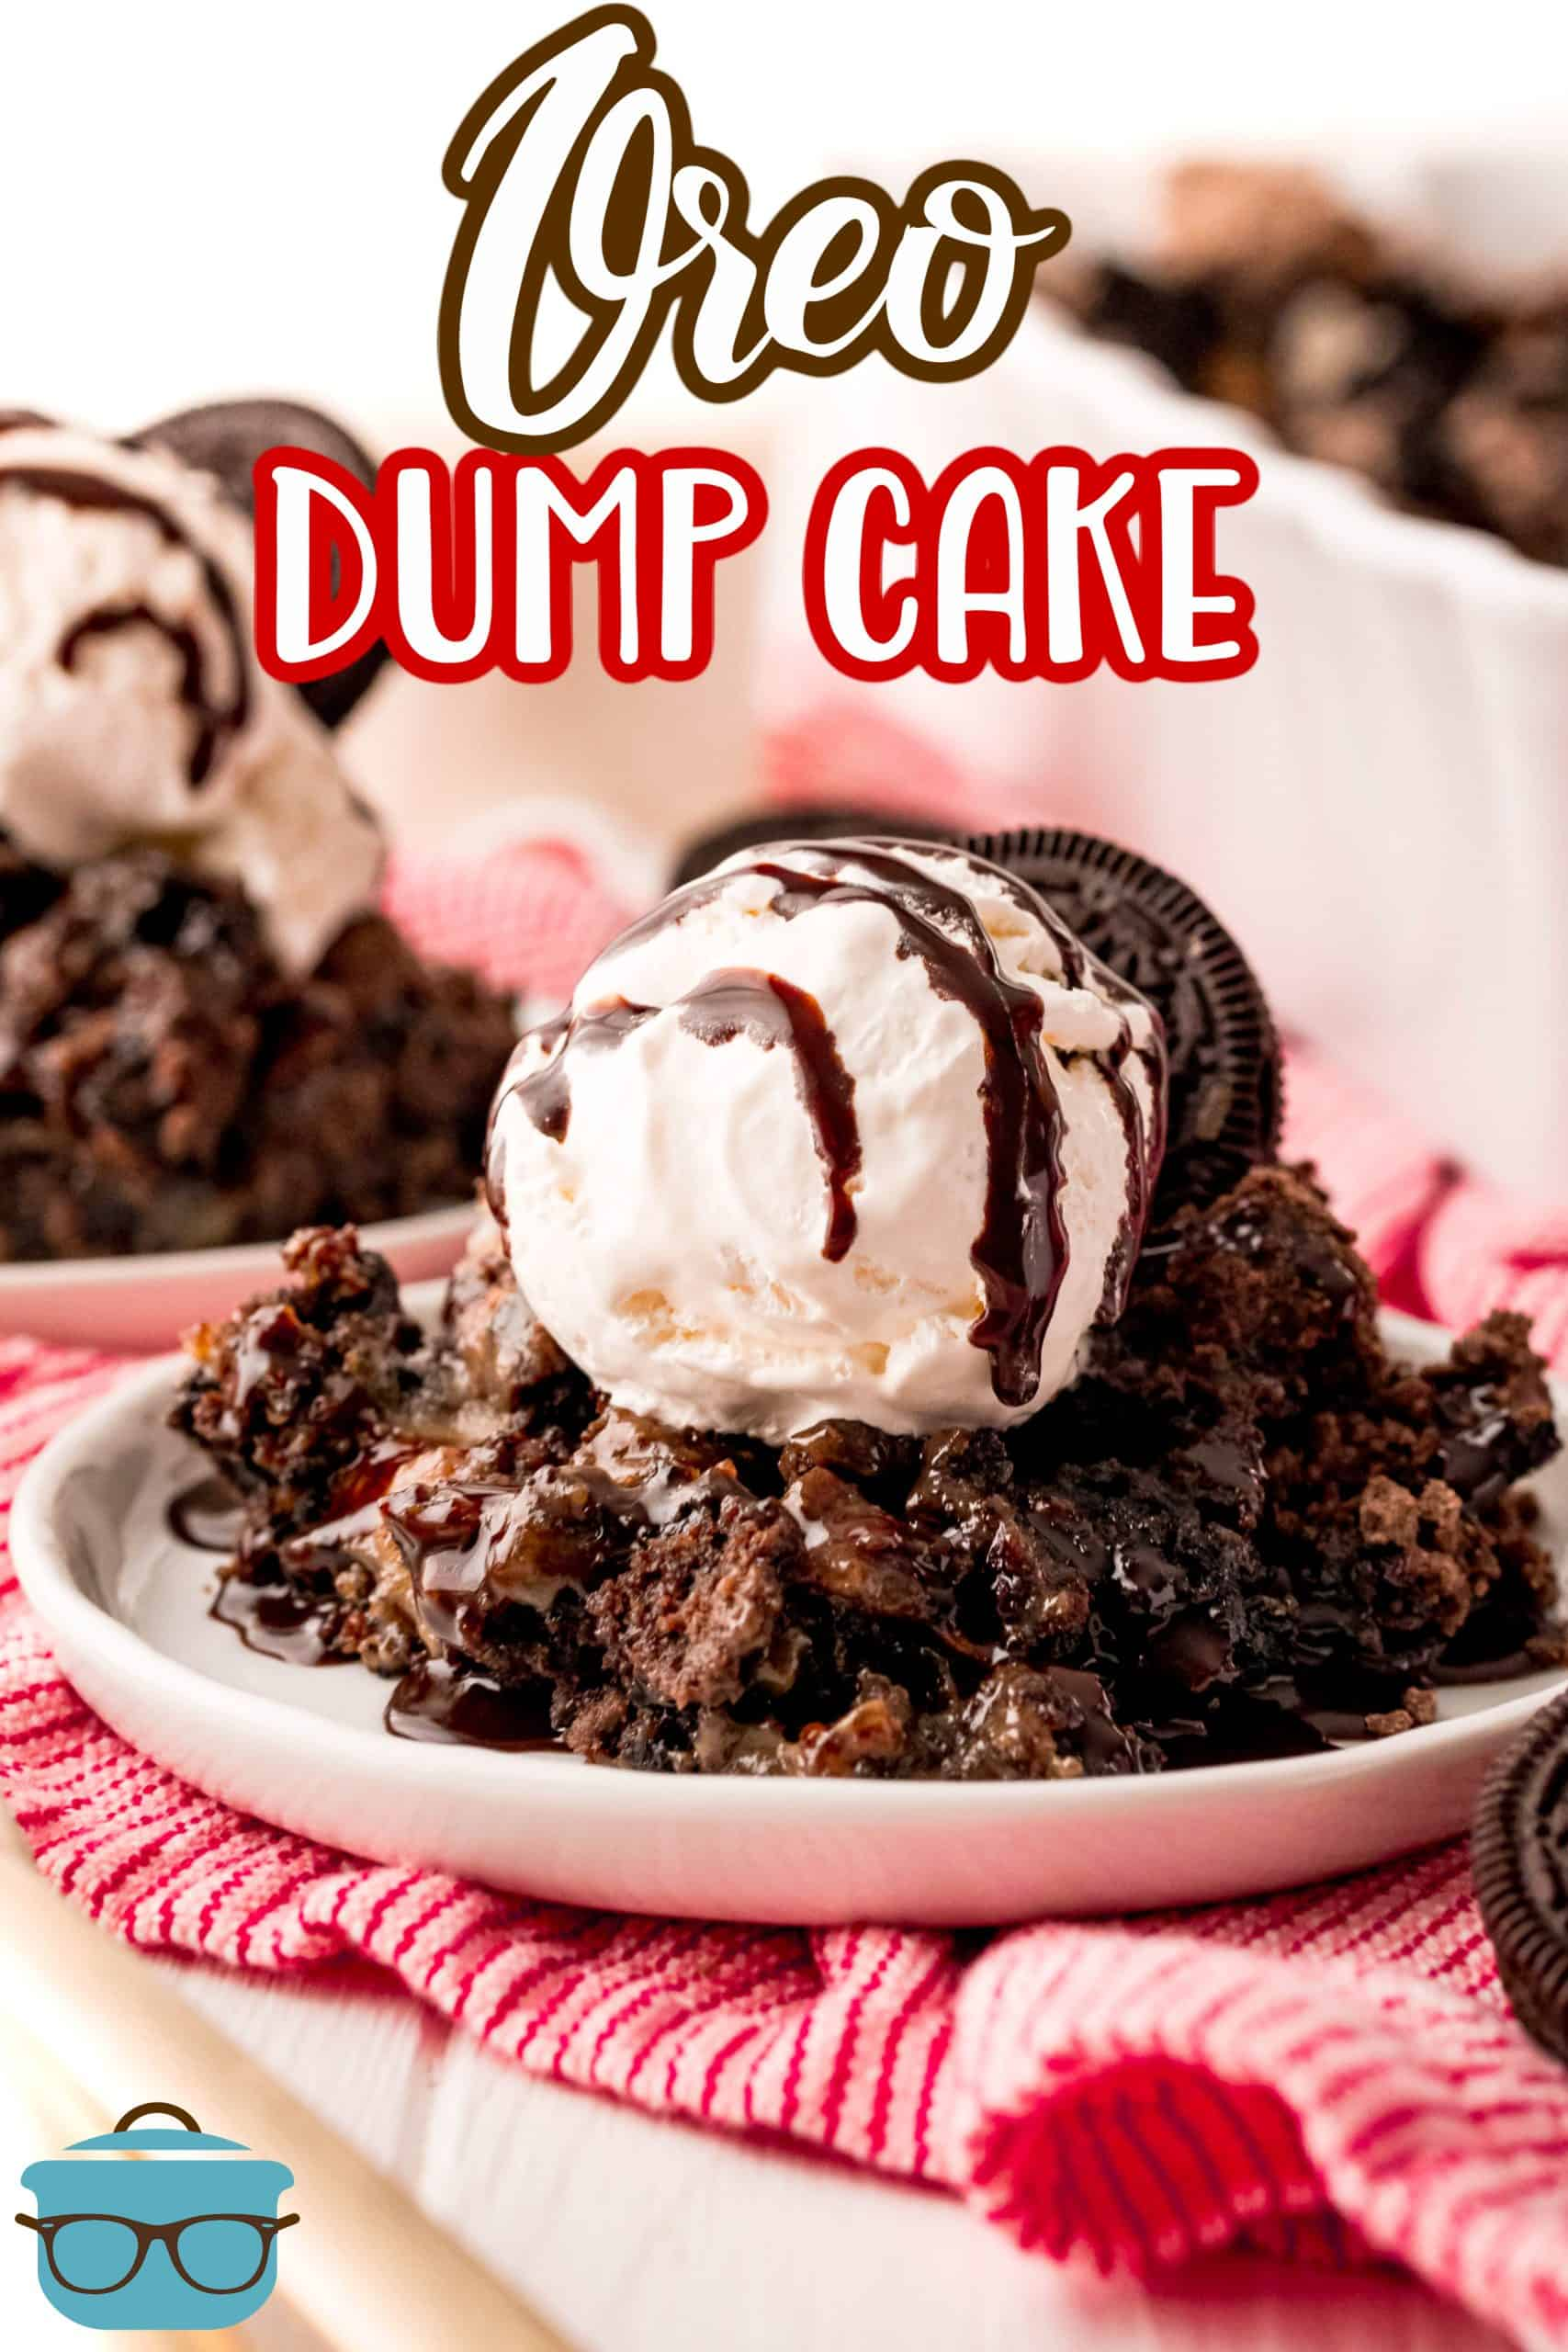 You are going to get hooked on this Oreo Dump Cake! It is all made in just one dish using just a few delicious ingredients. Tasty, rich and chocolatey!